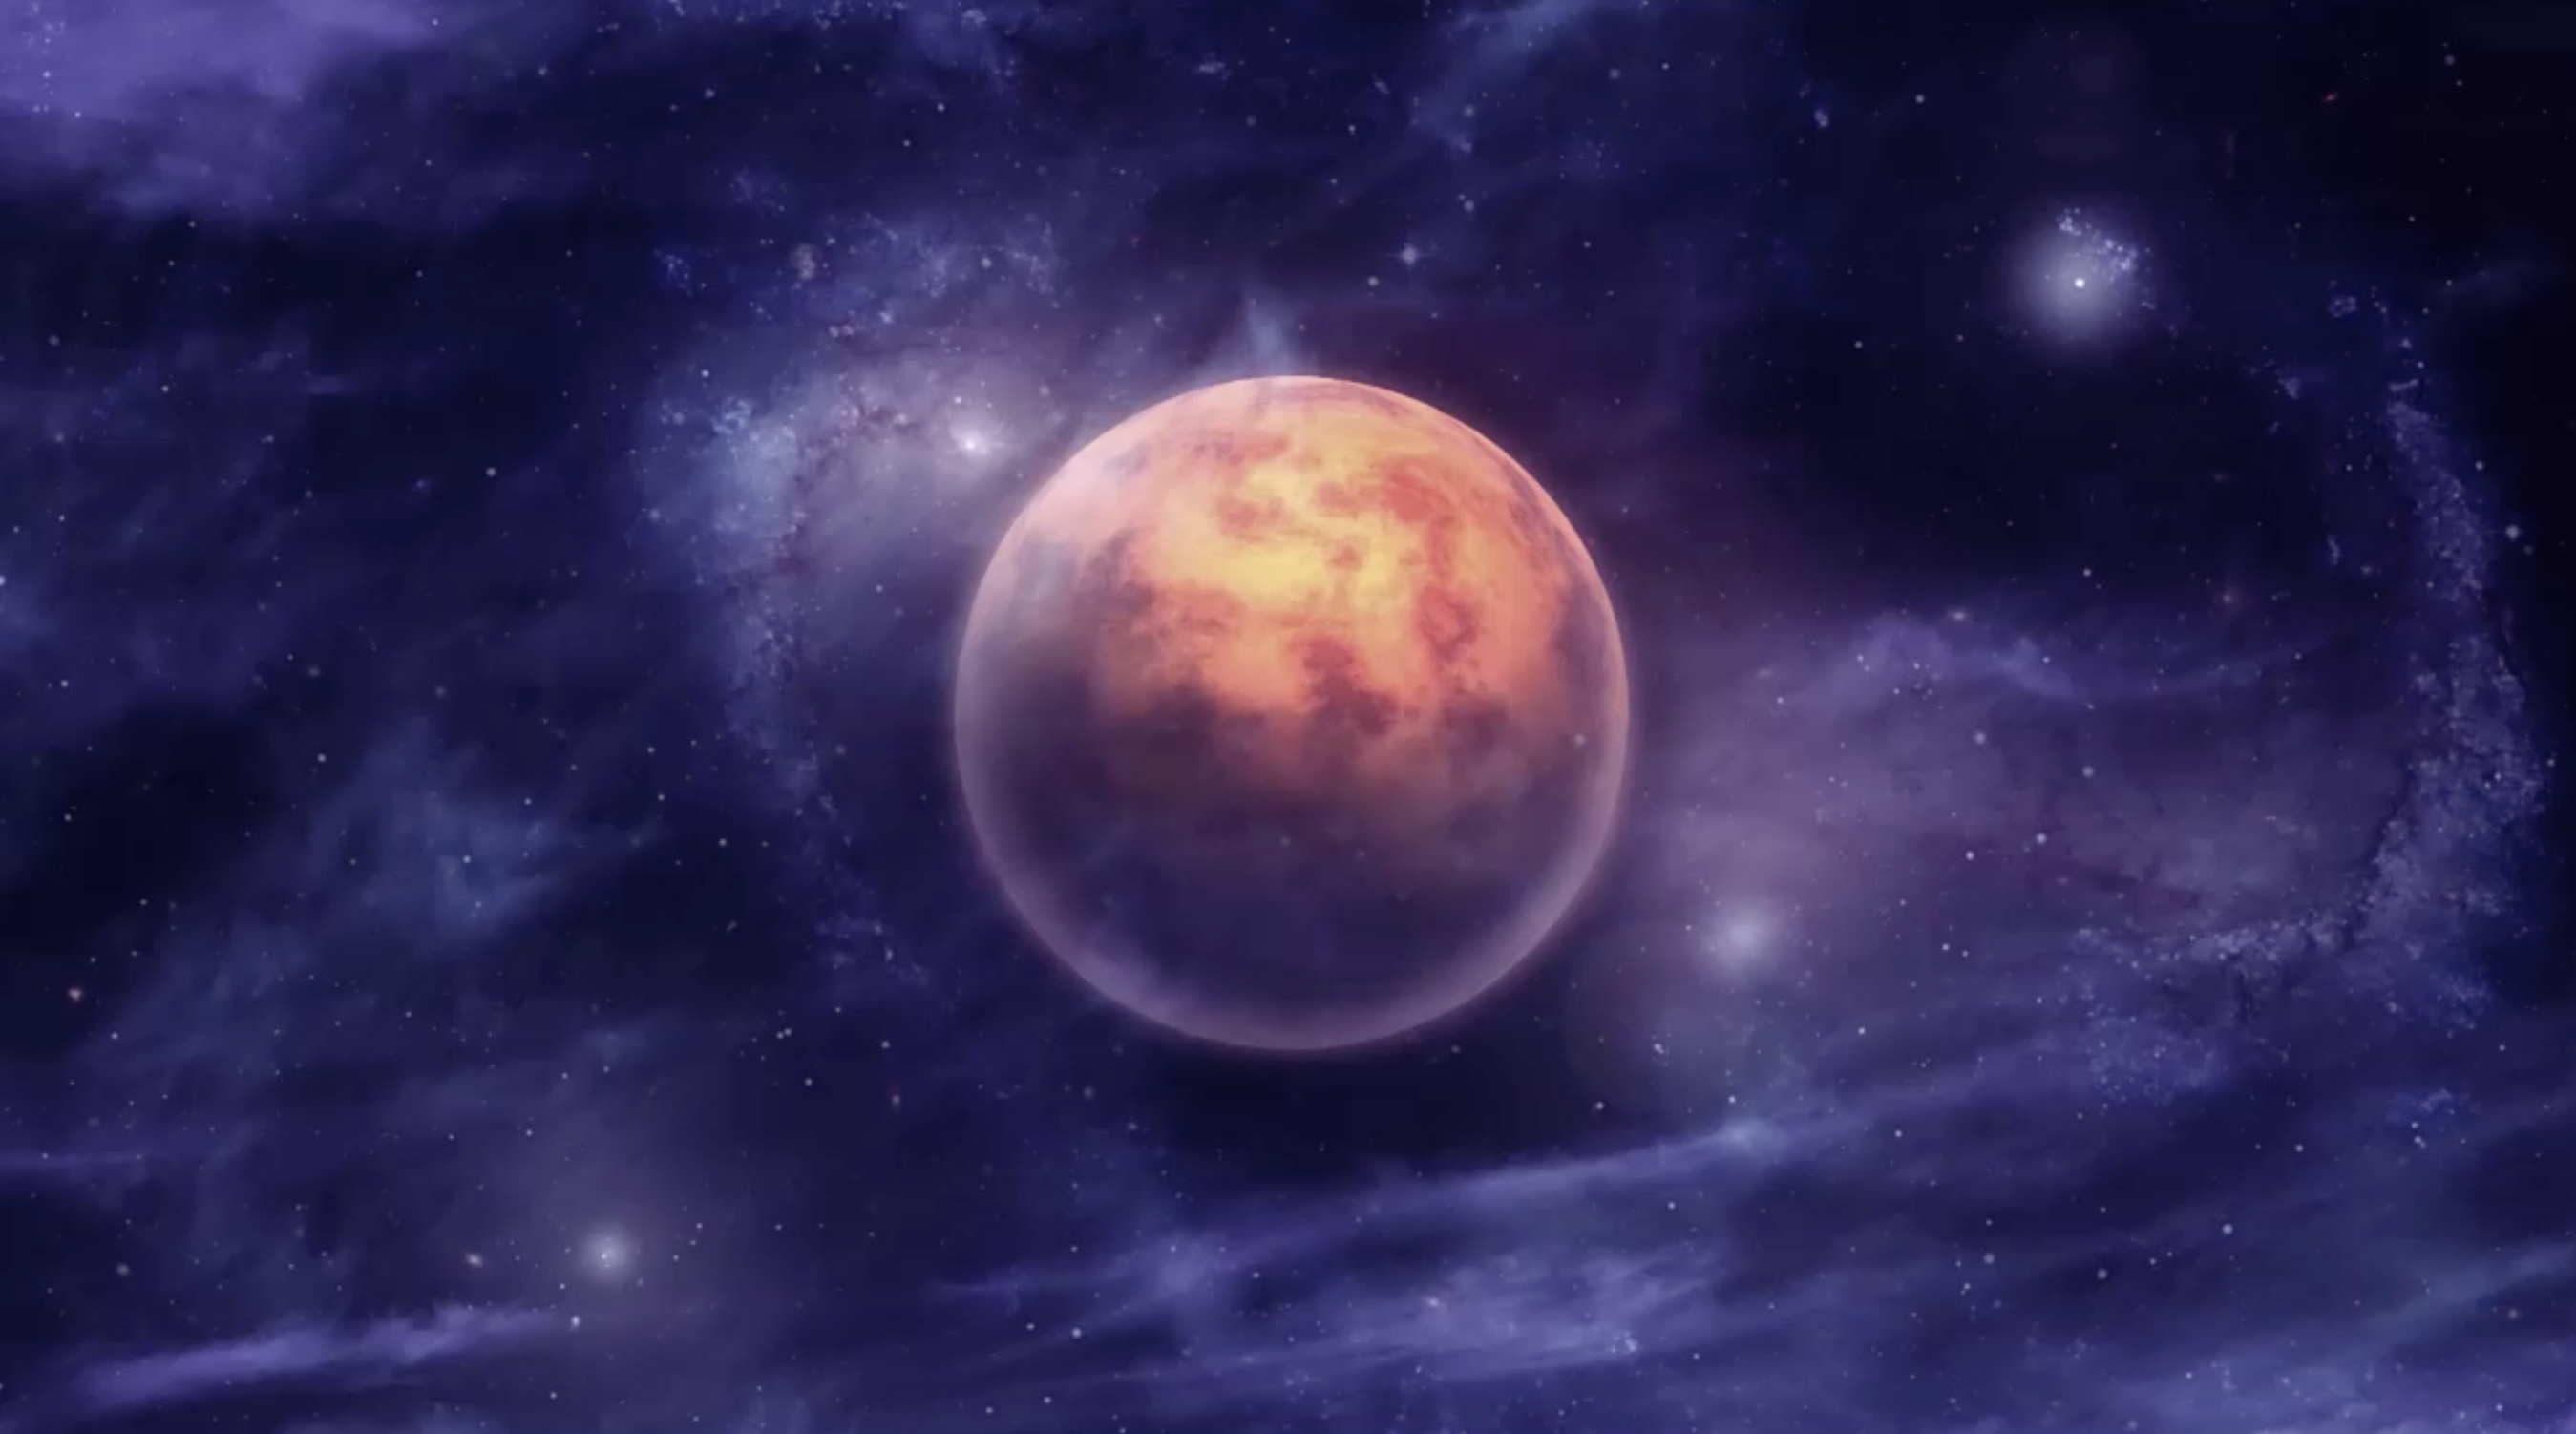 After Effects Video Tutorial: Texturized Space Scene - The Beat